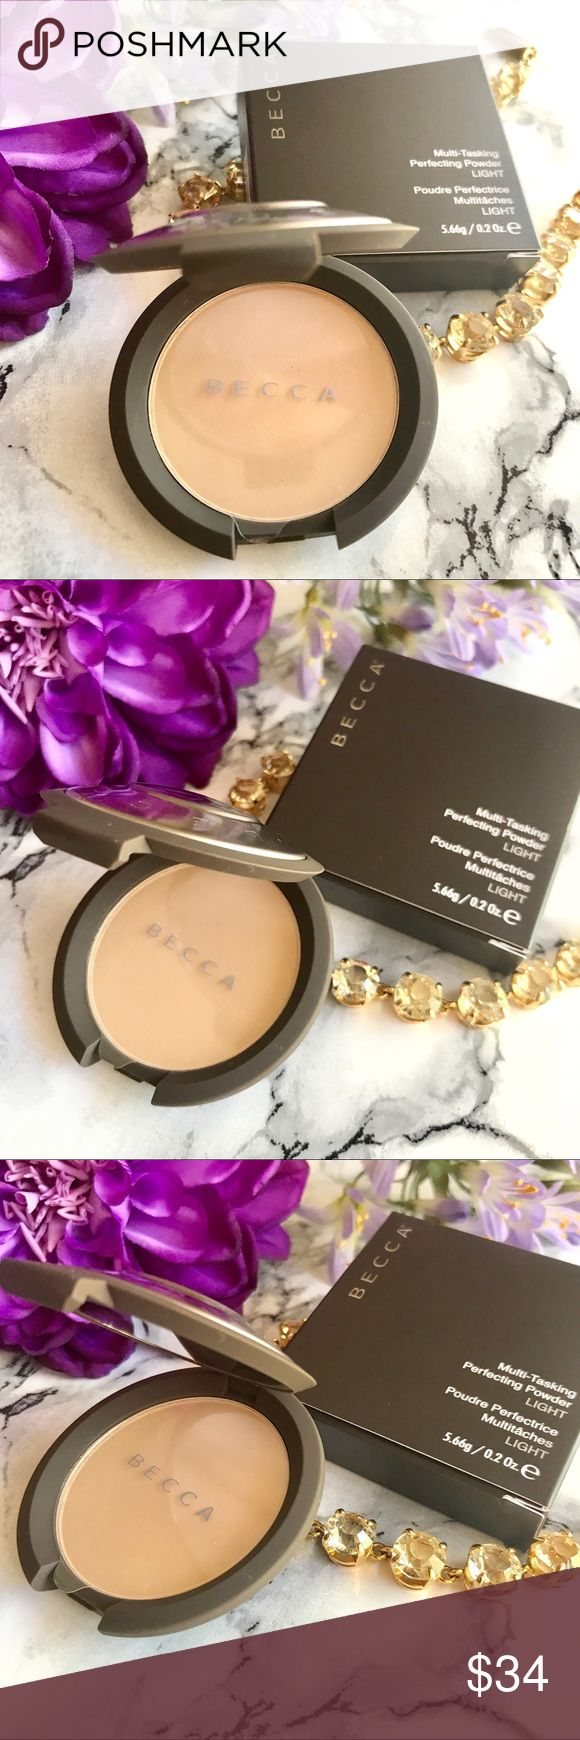 🆕 NIB 💕 Becca Multi-Tasking Perfecting Powder 🆕 NIB 💕 Becca Multi Tasking Perfecting Powder in LIGHT 🍃 Full Size .2 oz 🍃 Perfect for someone the the go and need a powder or setting powder. This one does it all! Water 💦 resistant , with antioxidants pure mineral for silky finish. Buildable coverage! 💕 Always NEW, Always Authentic! 💕 BECCA Makeup Face Powder